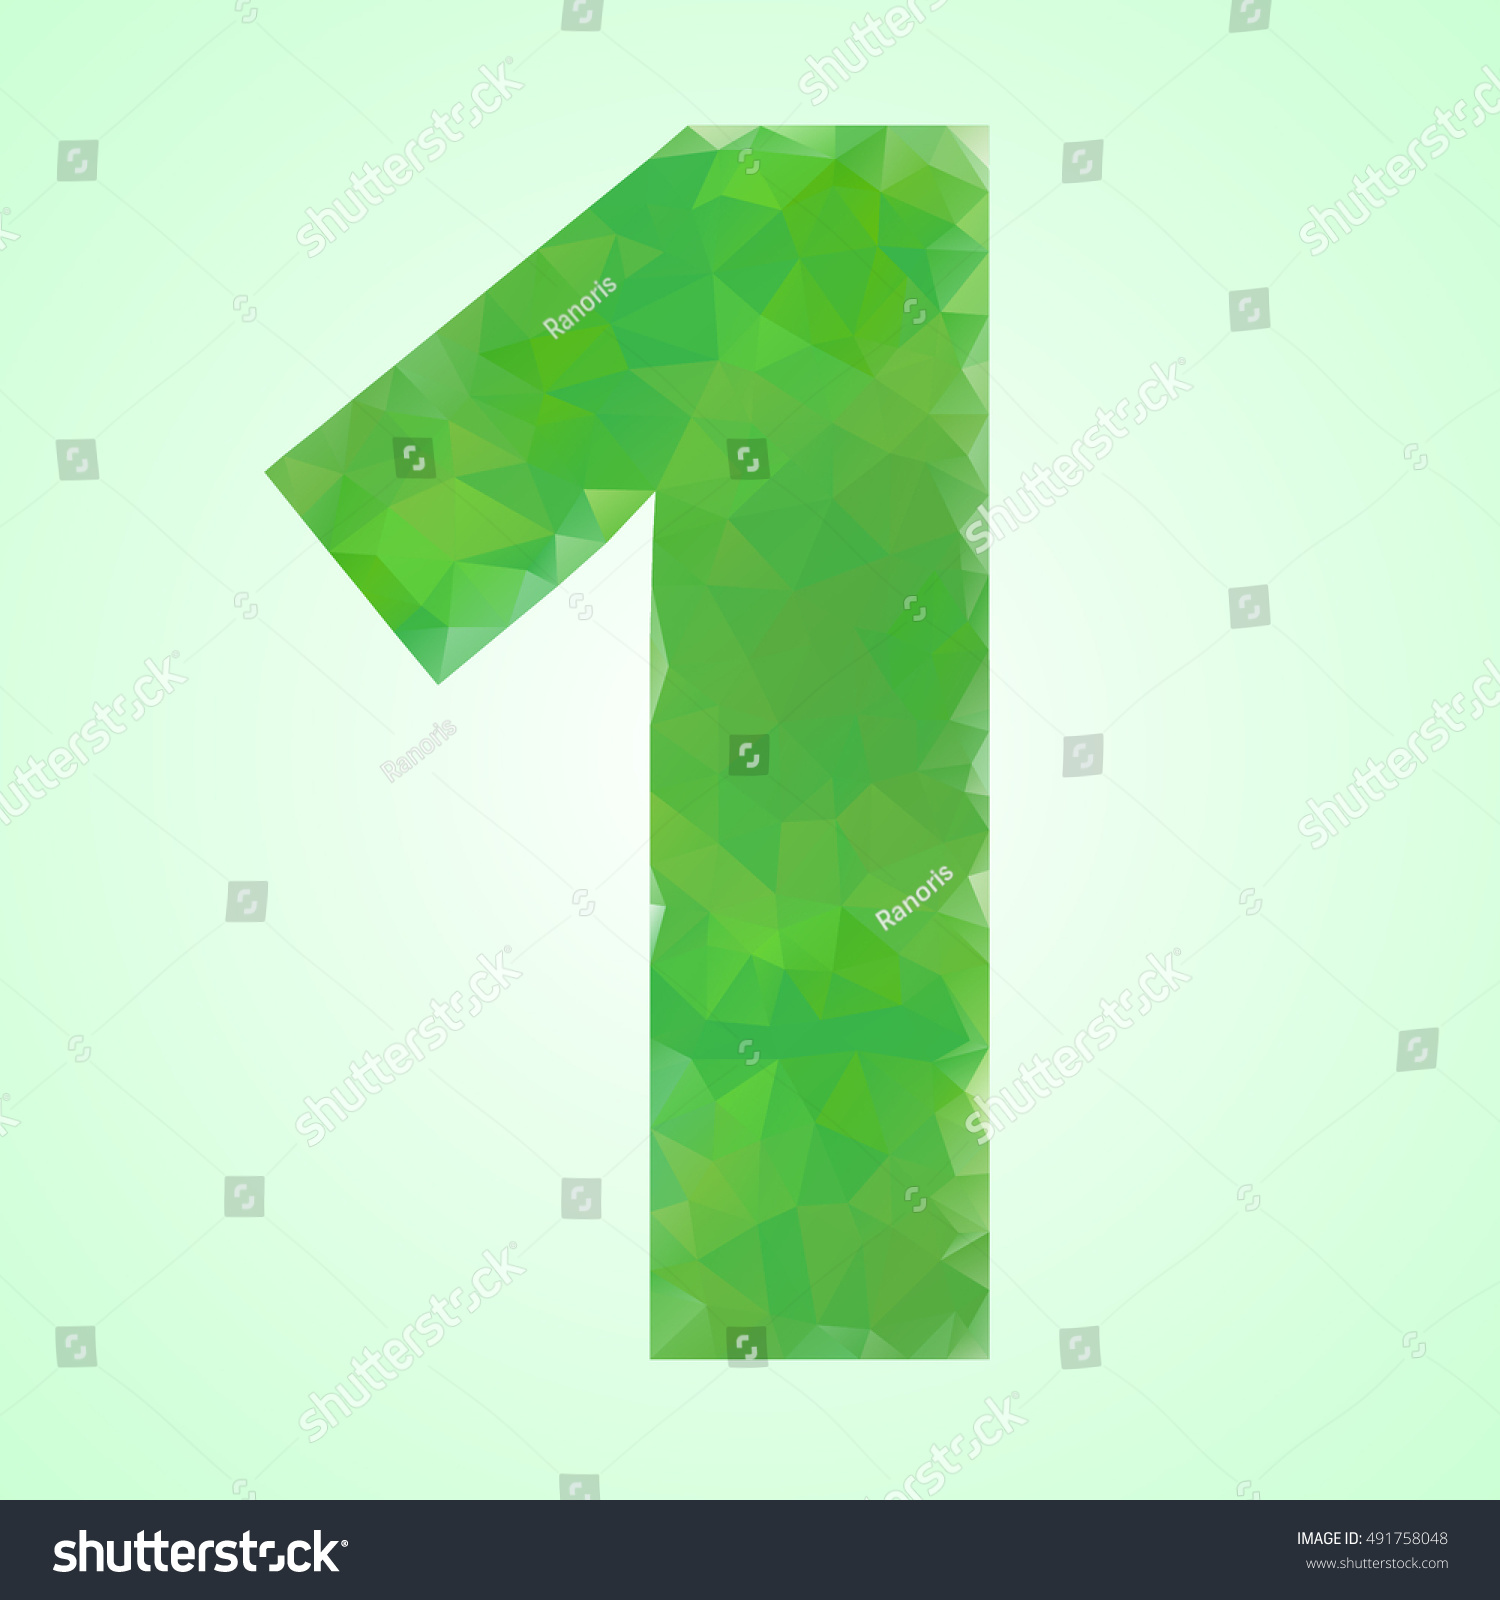 Number 1 Color Green Crystal Style Stock Vector 491758048 - Shutterstock